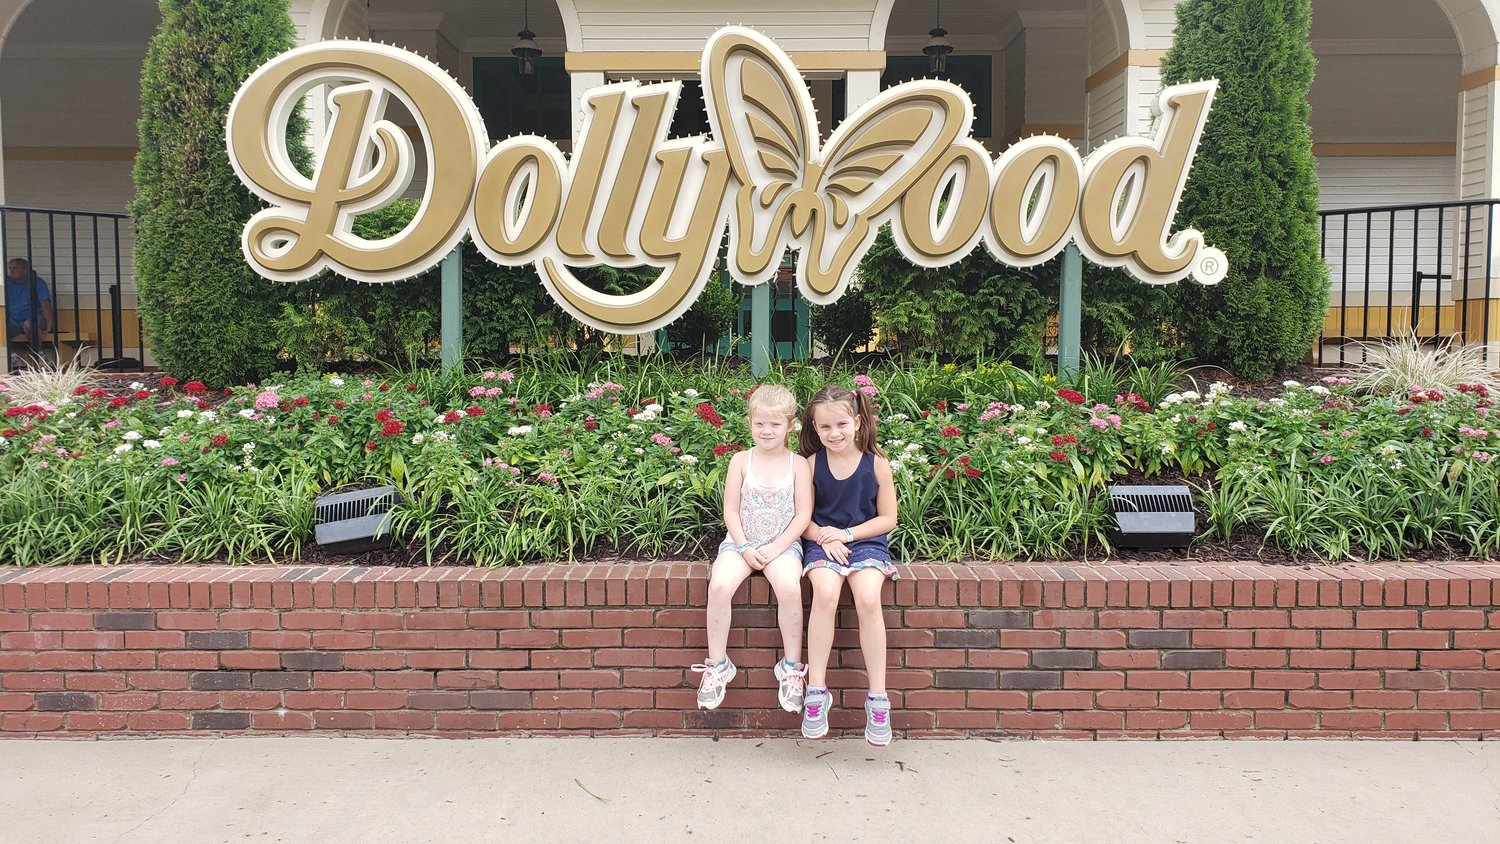 A new generation experiencing Dollywood for the first time.